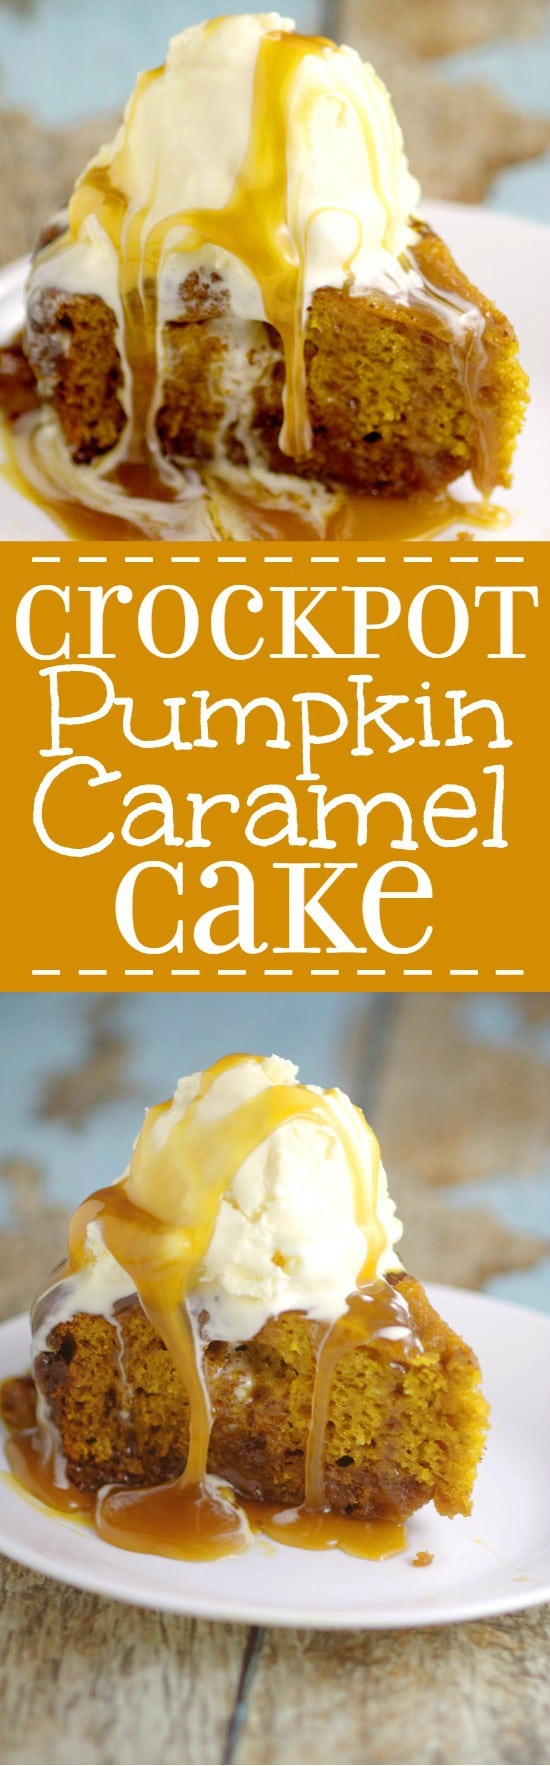 Rich, moist spiced pumpkin cake and gooey sweet caramel come together in this Crockpot Pumpkin Caramel Cake recipe to make a decadent and festive slow cooker Fall dessert recipe! Pumpkin spice and caramel in the Crockpot?! Can't go wrong there!